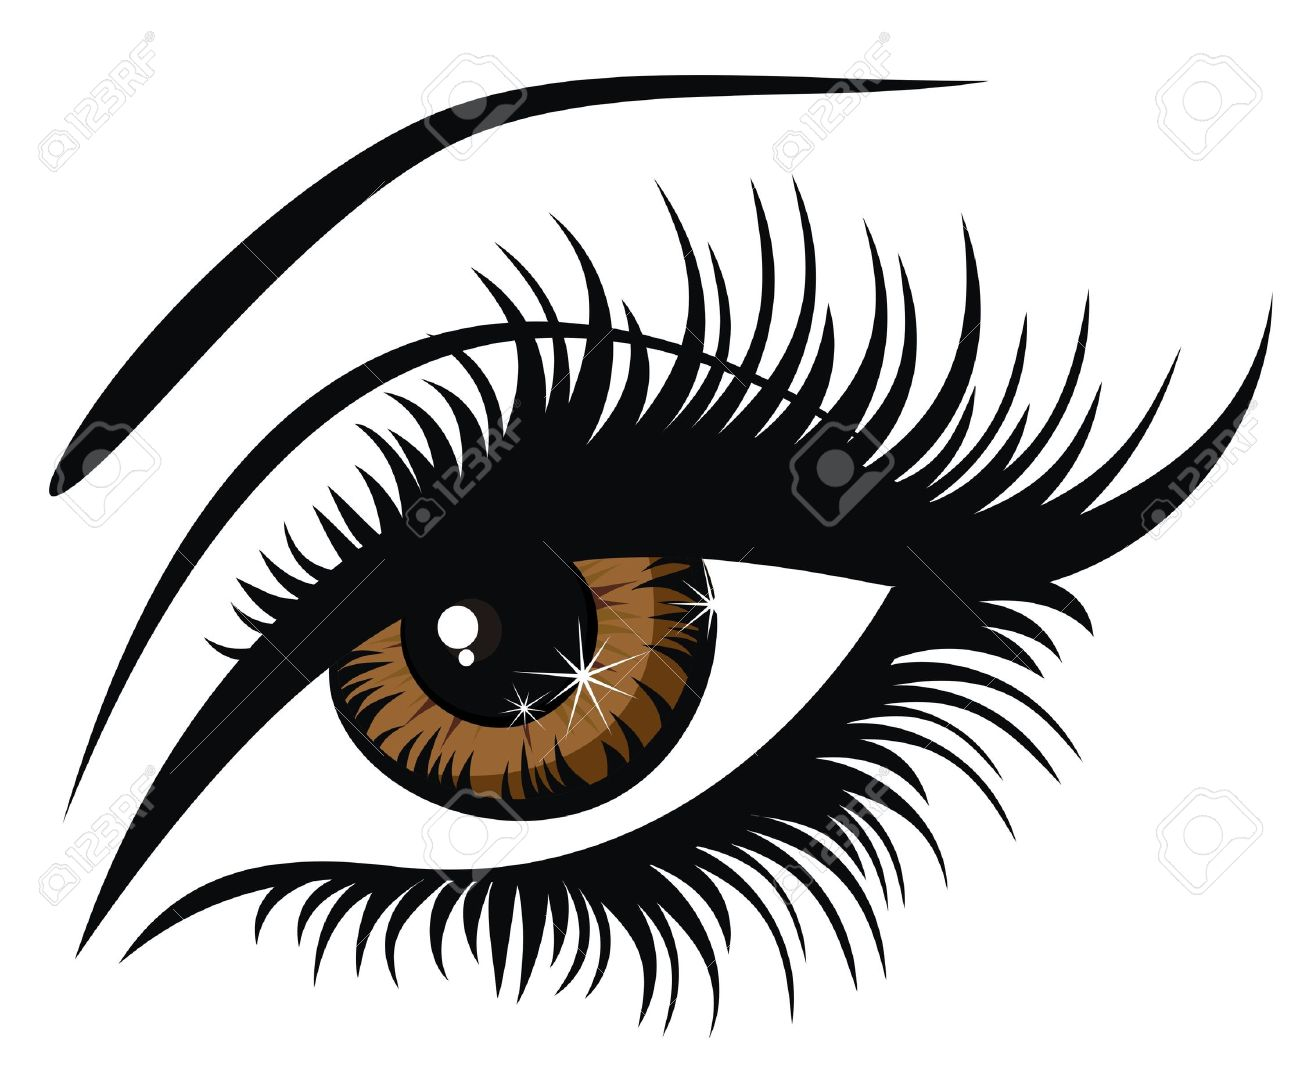 10,378 Eyelash Stock Vector Illustration And Royalty Free Eyelash.